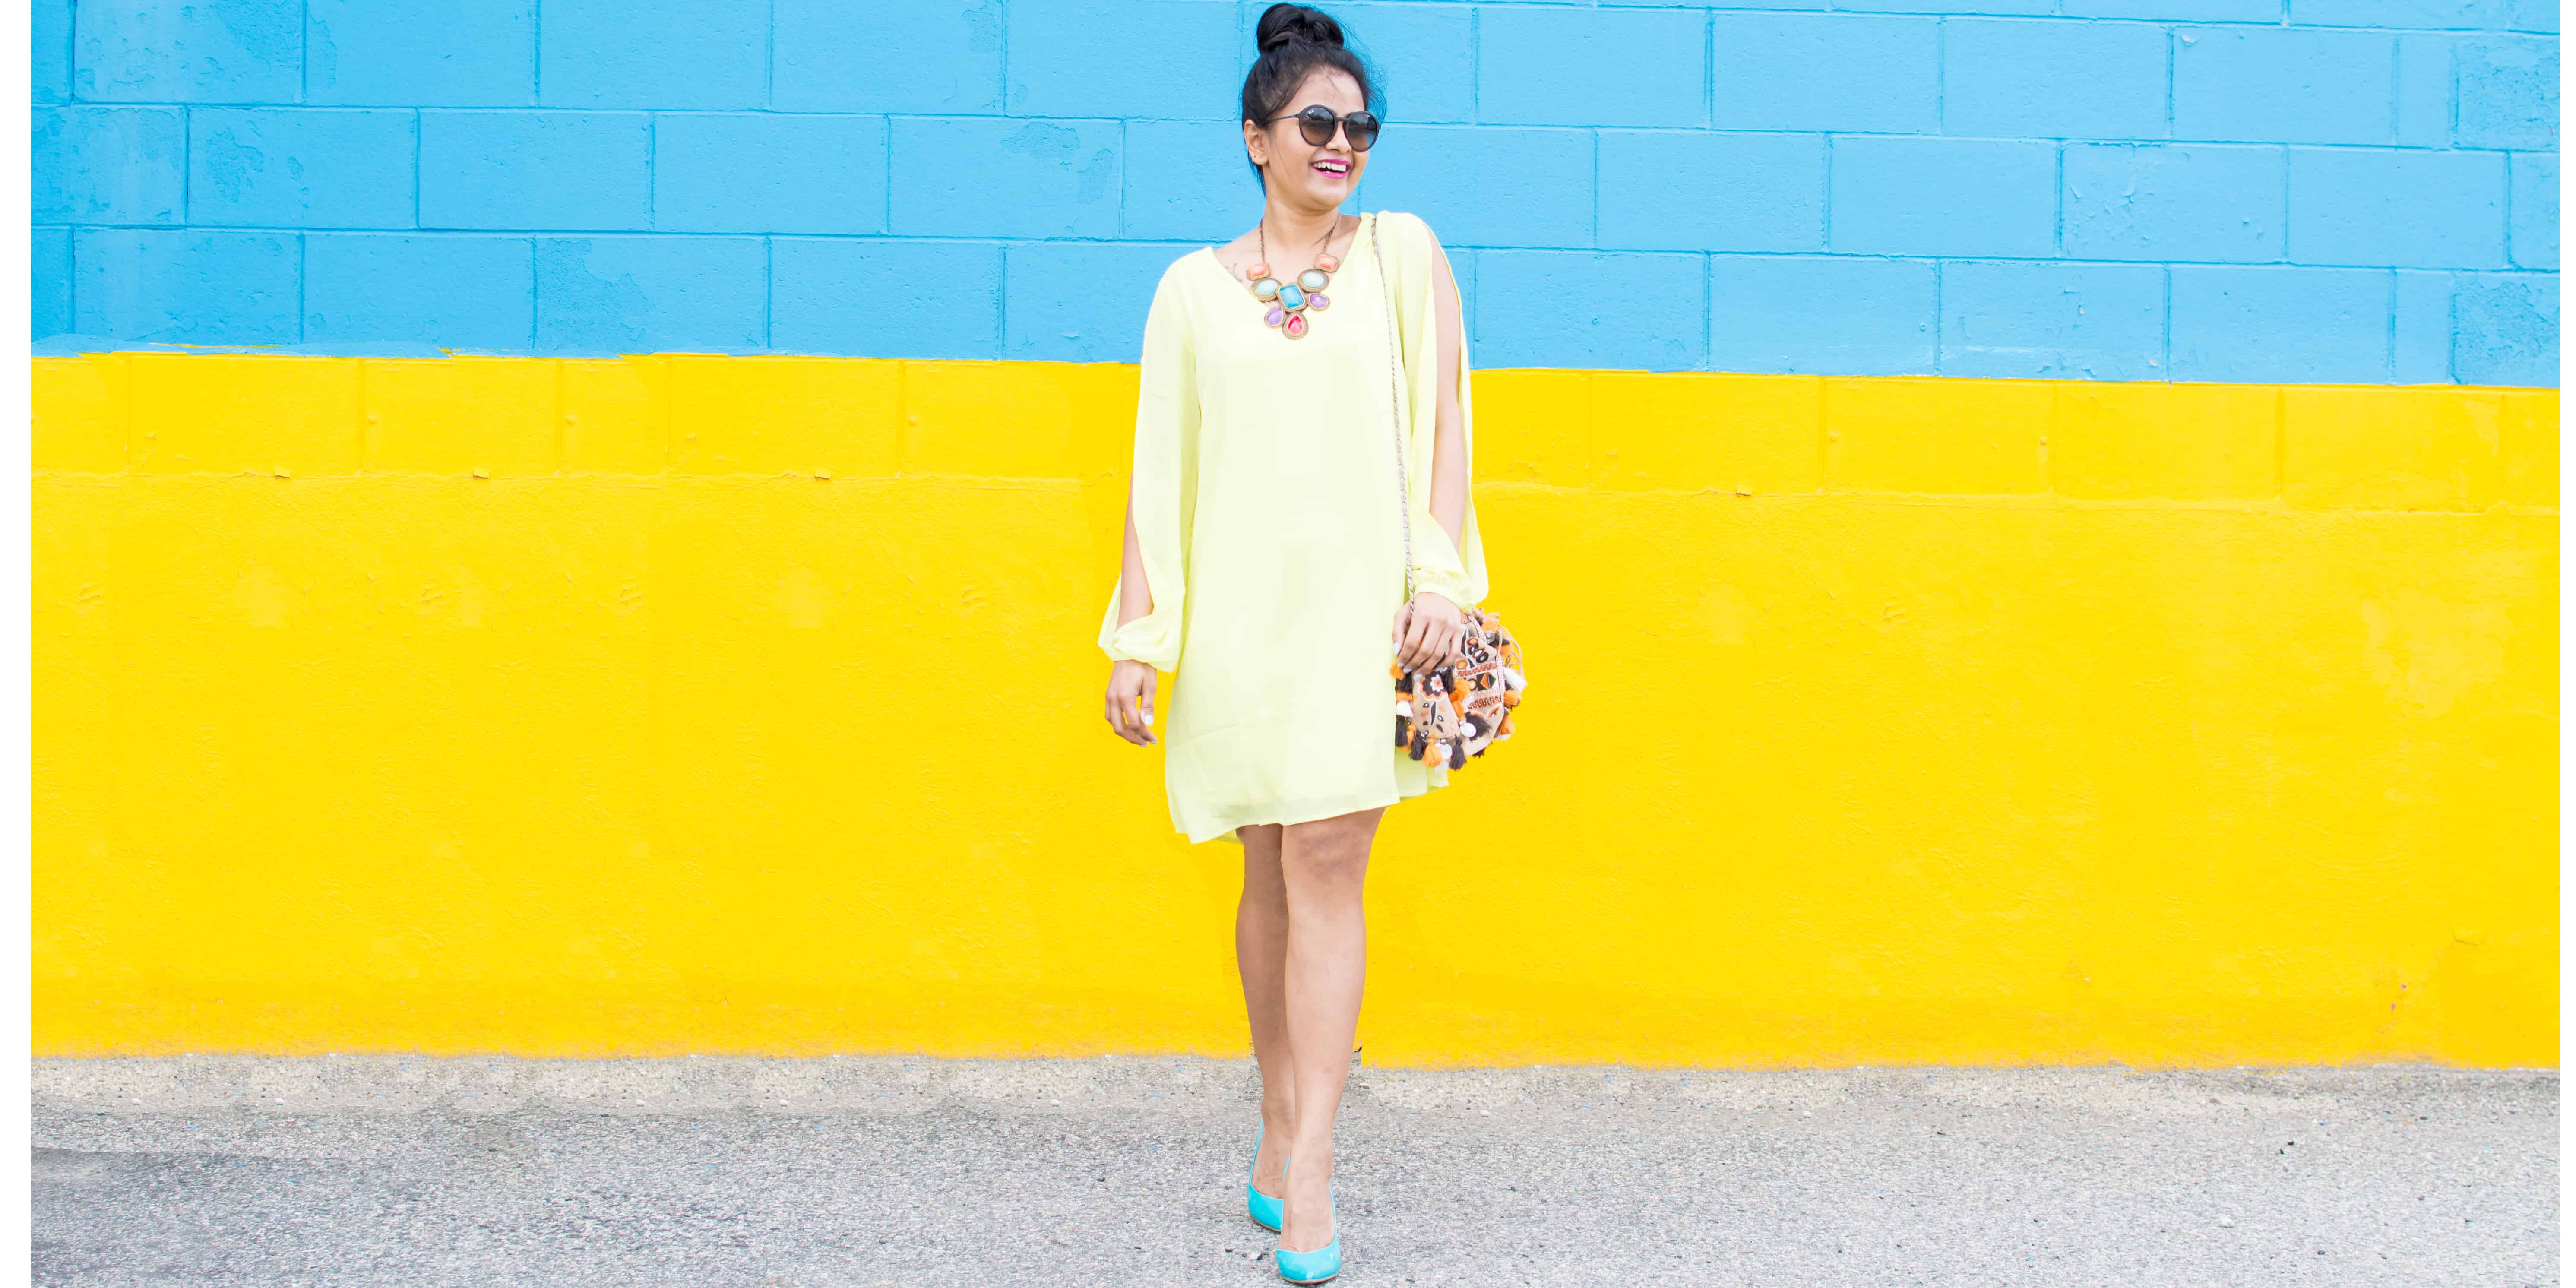 Neha-Gandhi-jcpenny-featured